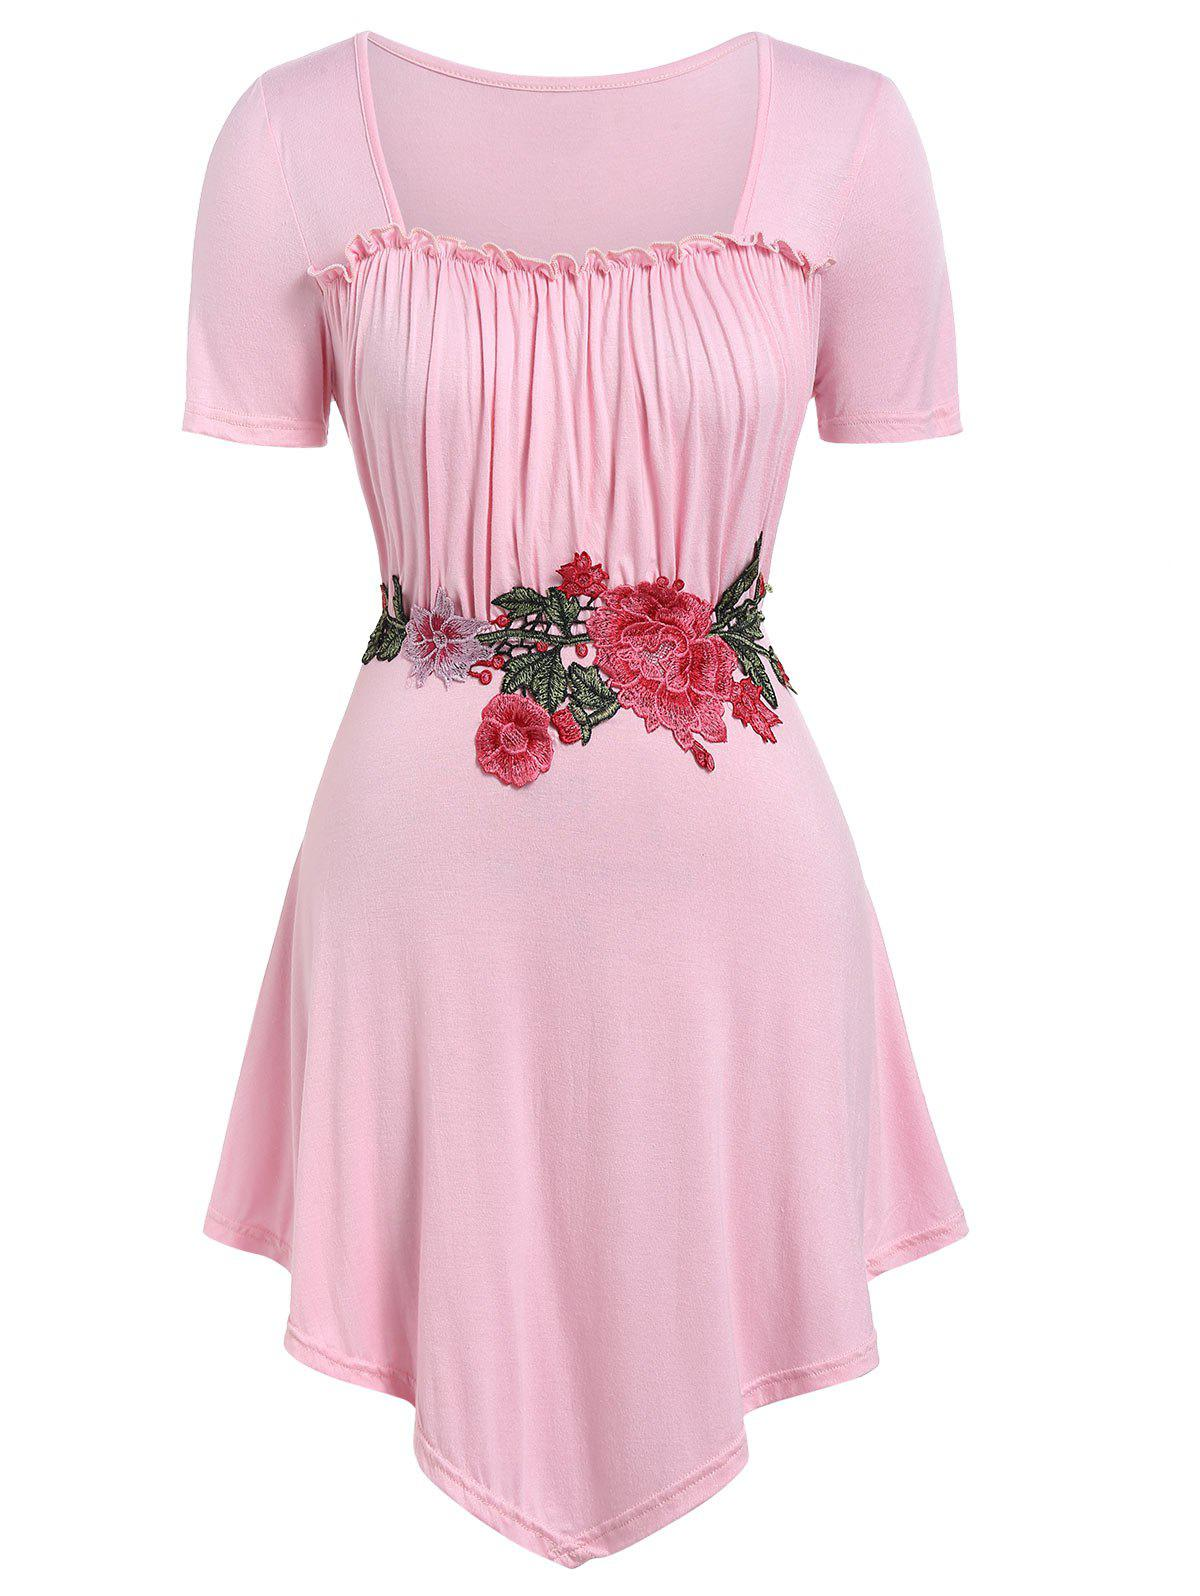 Plus Size Floral Embroidery Square Neck T-shirt - PIG PINK 3X